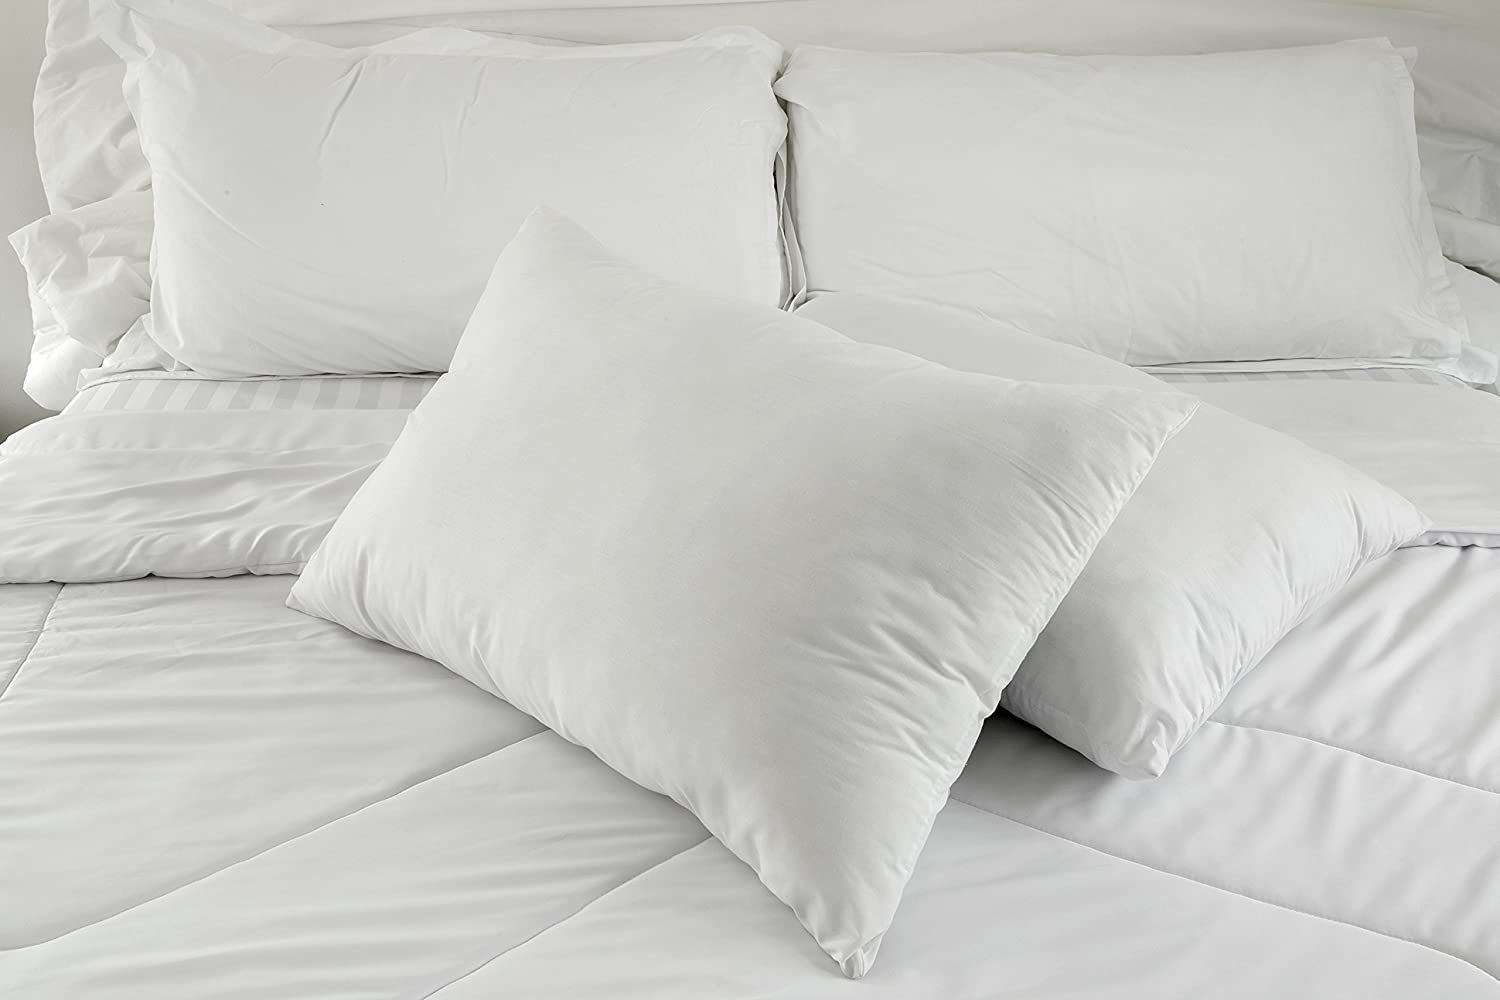 East Coast Bedding 50% White Goose Down + 50% White Goose Feather Contour Bed Pillows – Set of 2 - Hypoallergenic, Hotel Quality, Best for Back & Side Sleeping – 300 TC Cotton Shell (Queen)